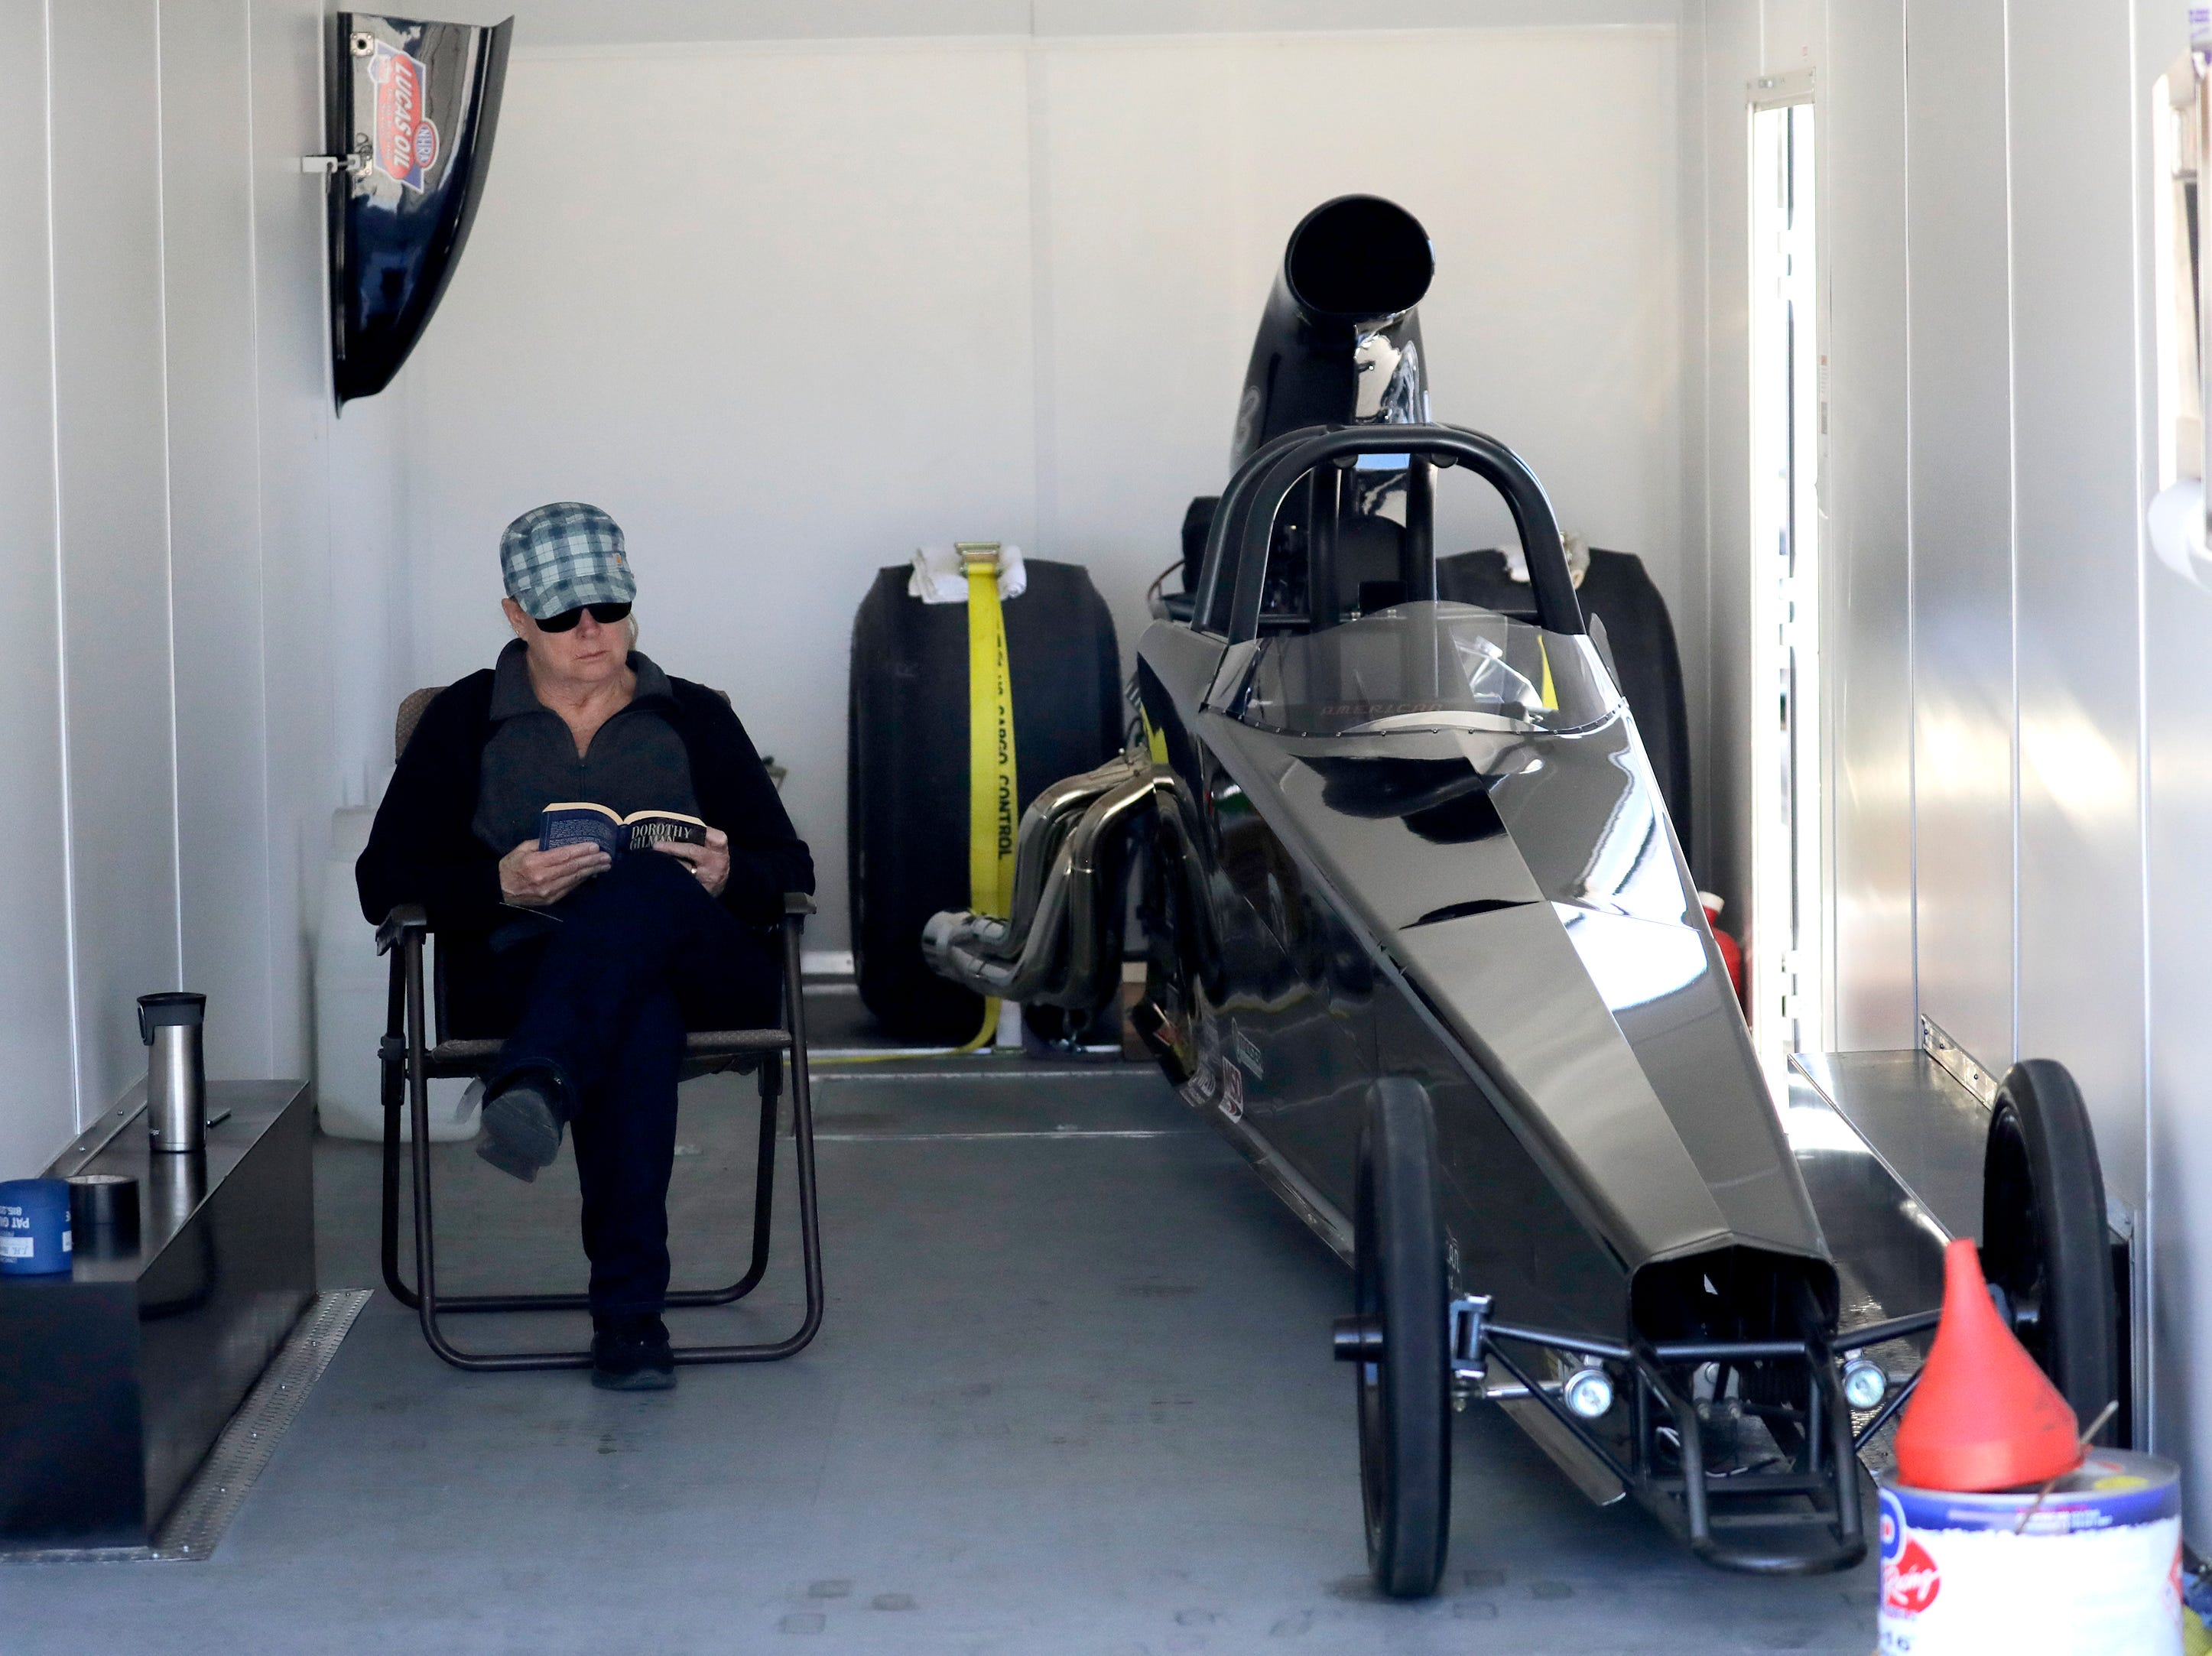 Mary Van Straten of De Pere reads a book inside her trailor while her husband works on a second dragster outside during the Wisconsin International Raceway Strip Test & Tune event Saturday, April 20, 2019, in Kaukauna, Wis. Drivers spent the day getting safety inspections, tune ups and test runs on the track for the upcoming season.